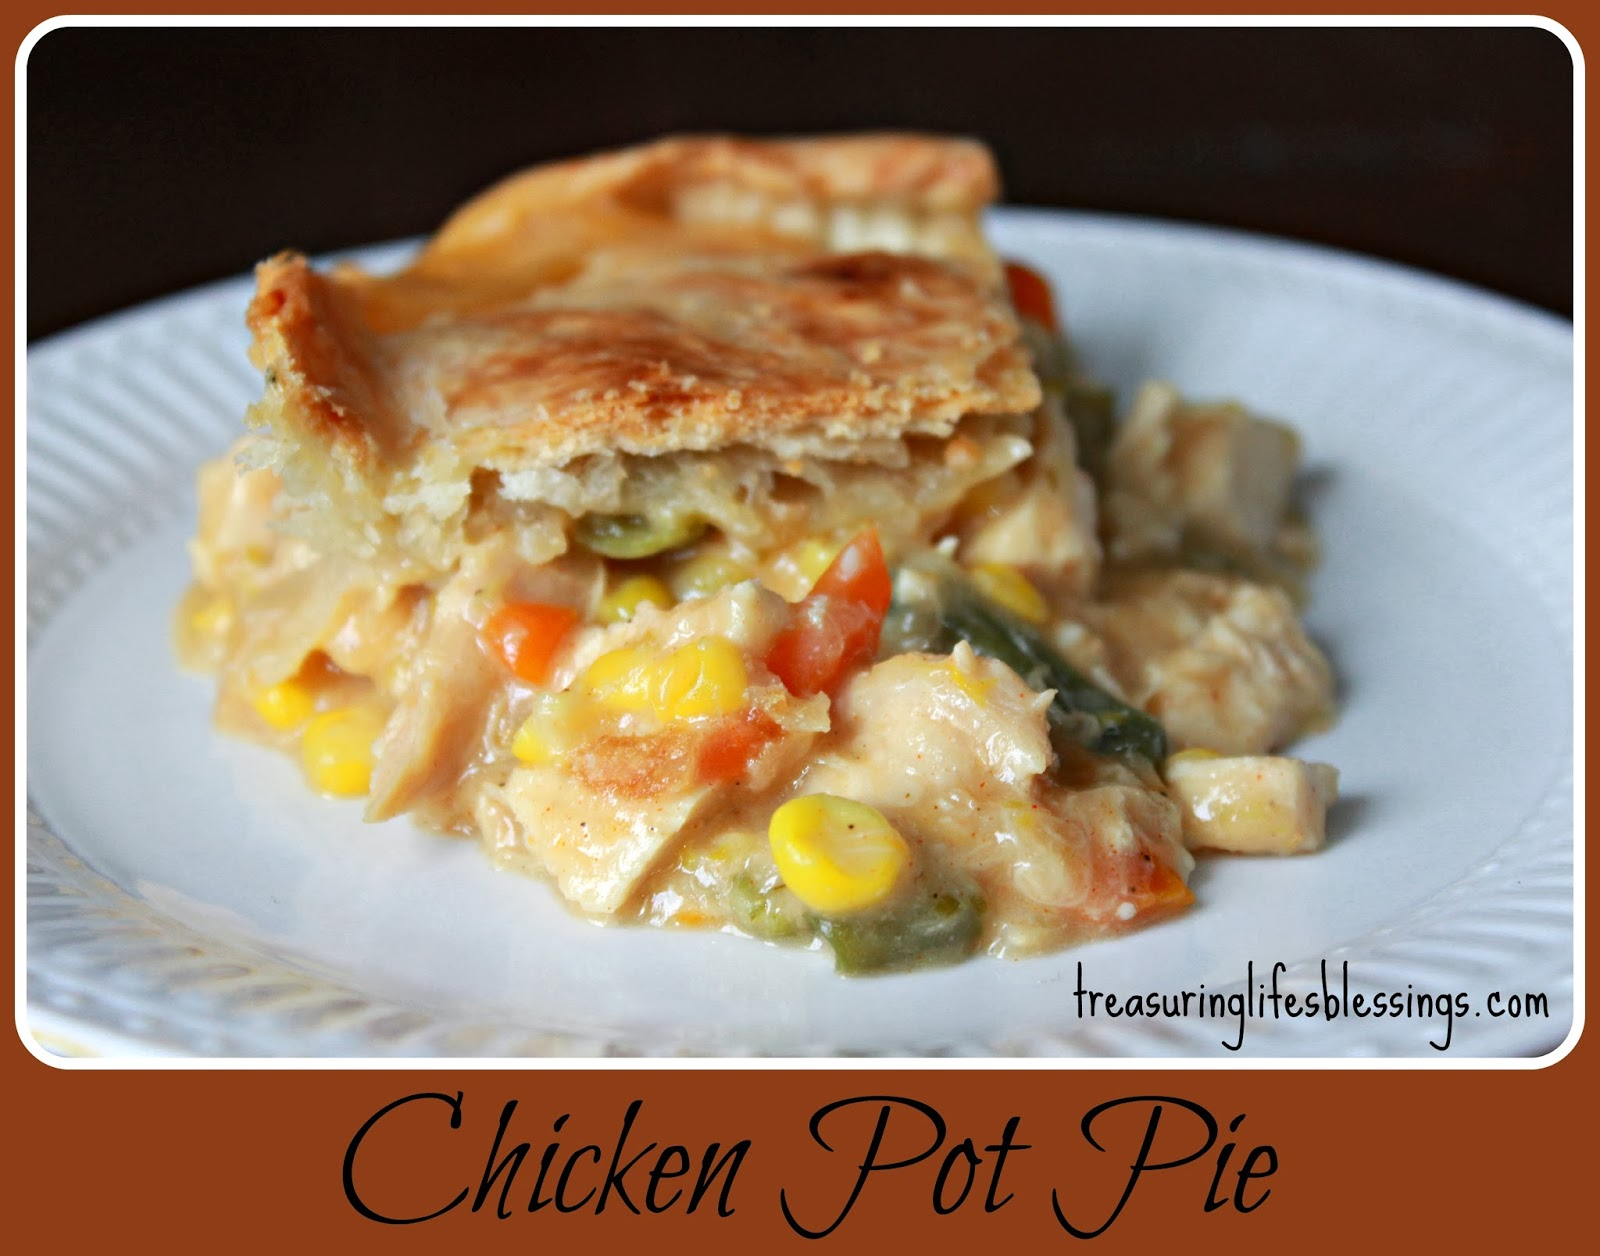 Chicken Pot Pie w/crust